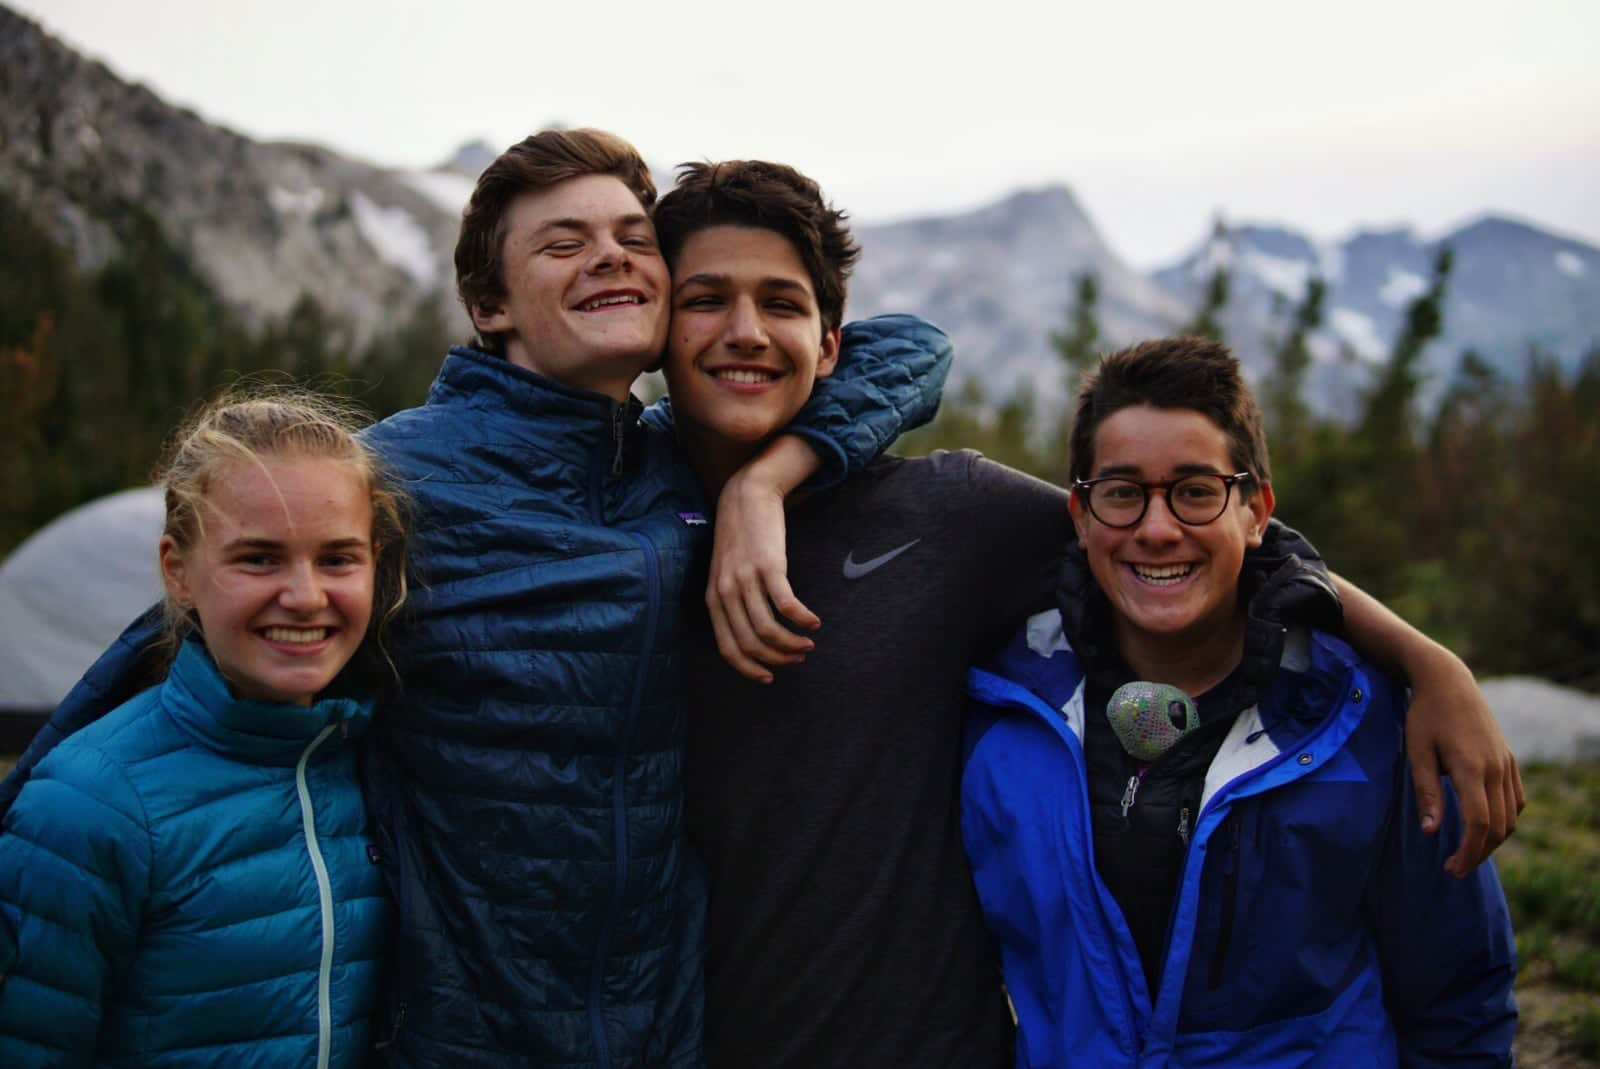 Campers become friends while hiking in the high sierras this summer on an adventure program